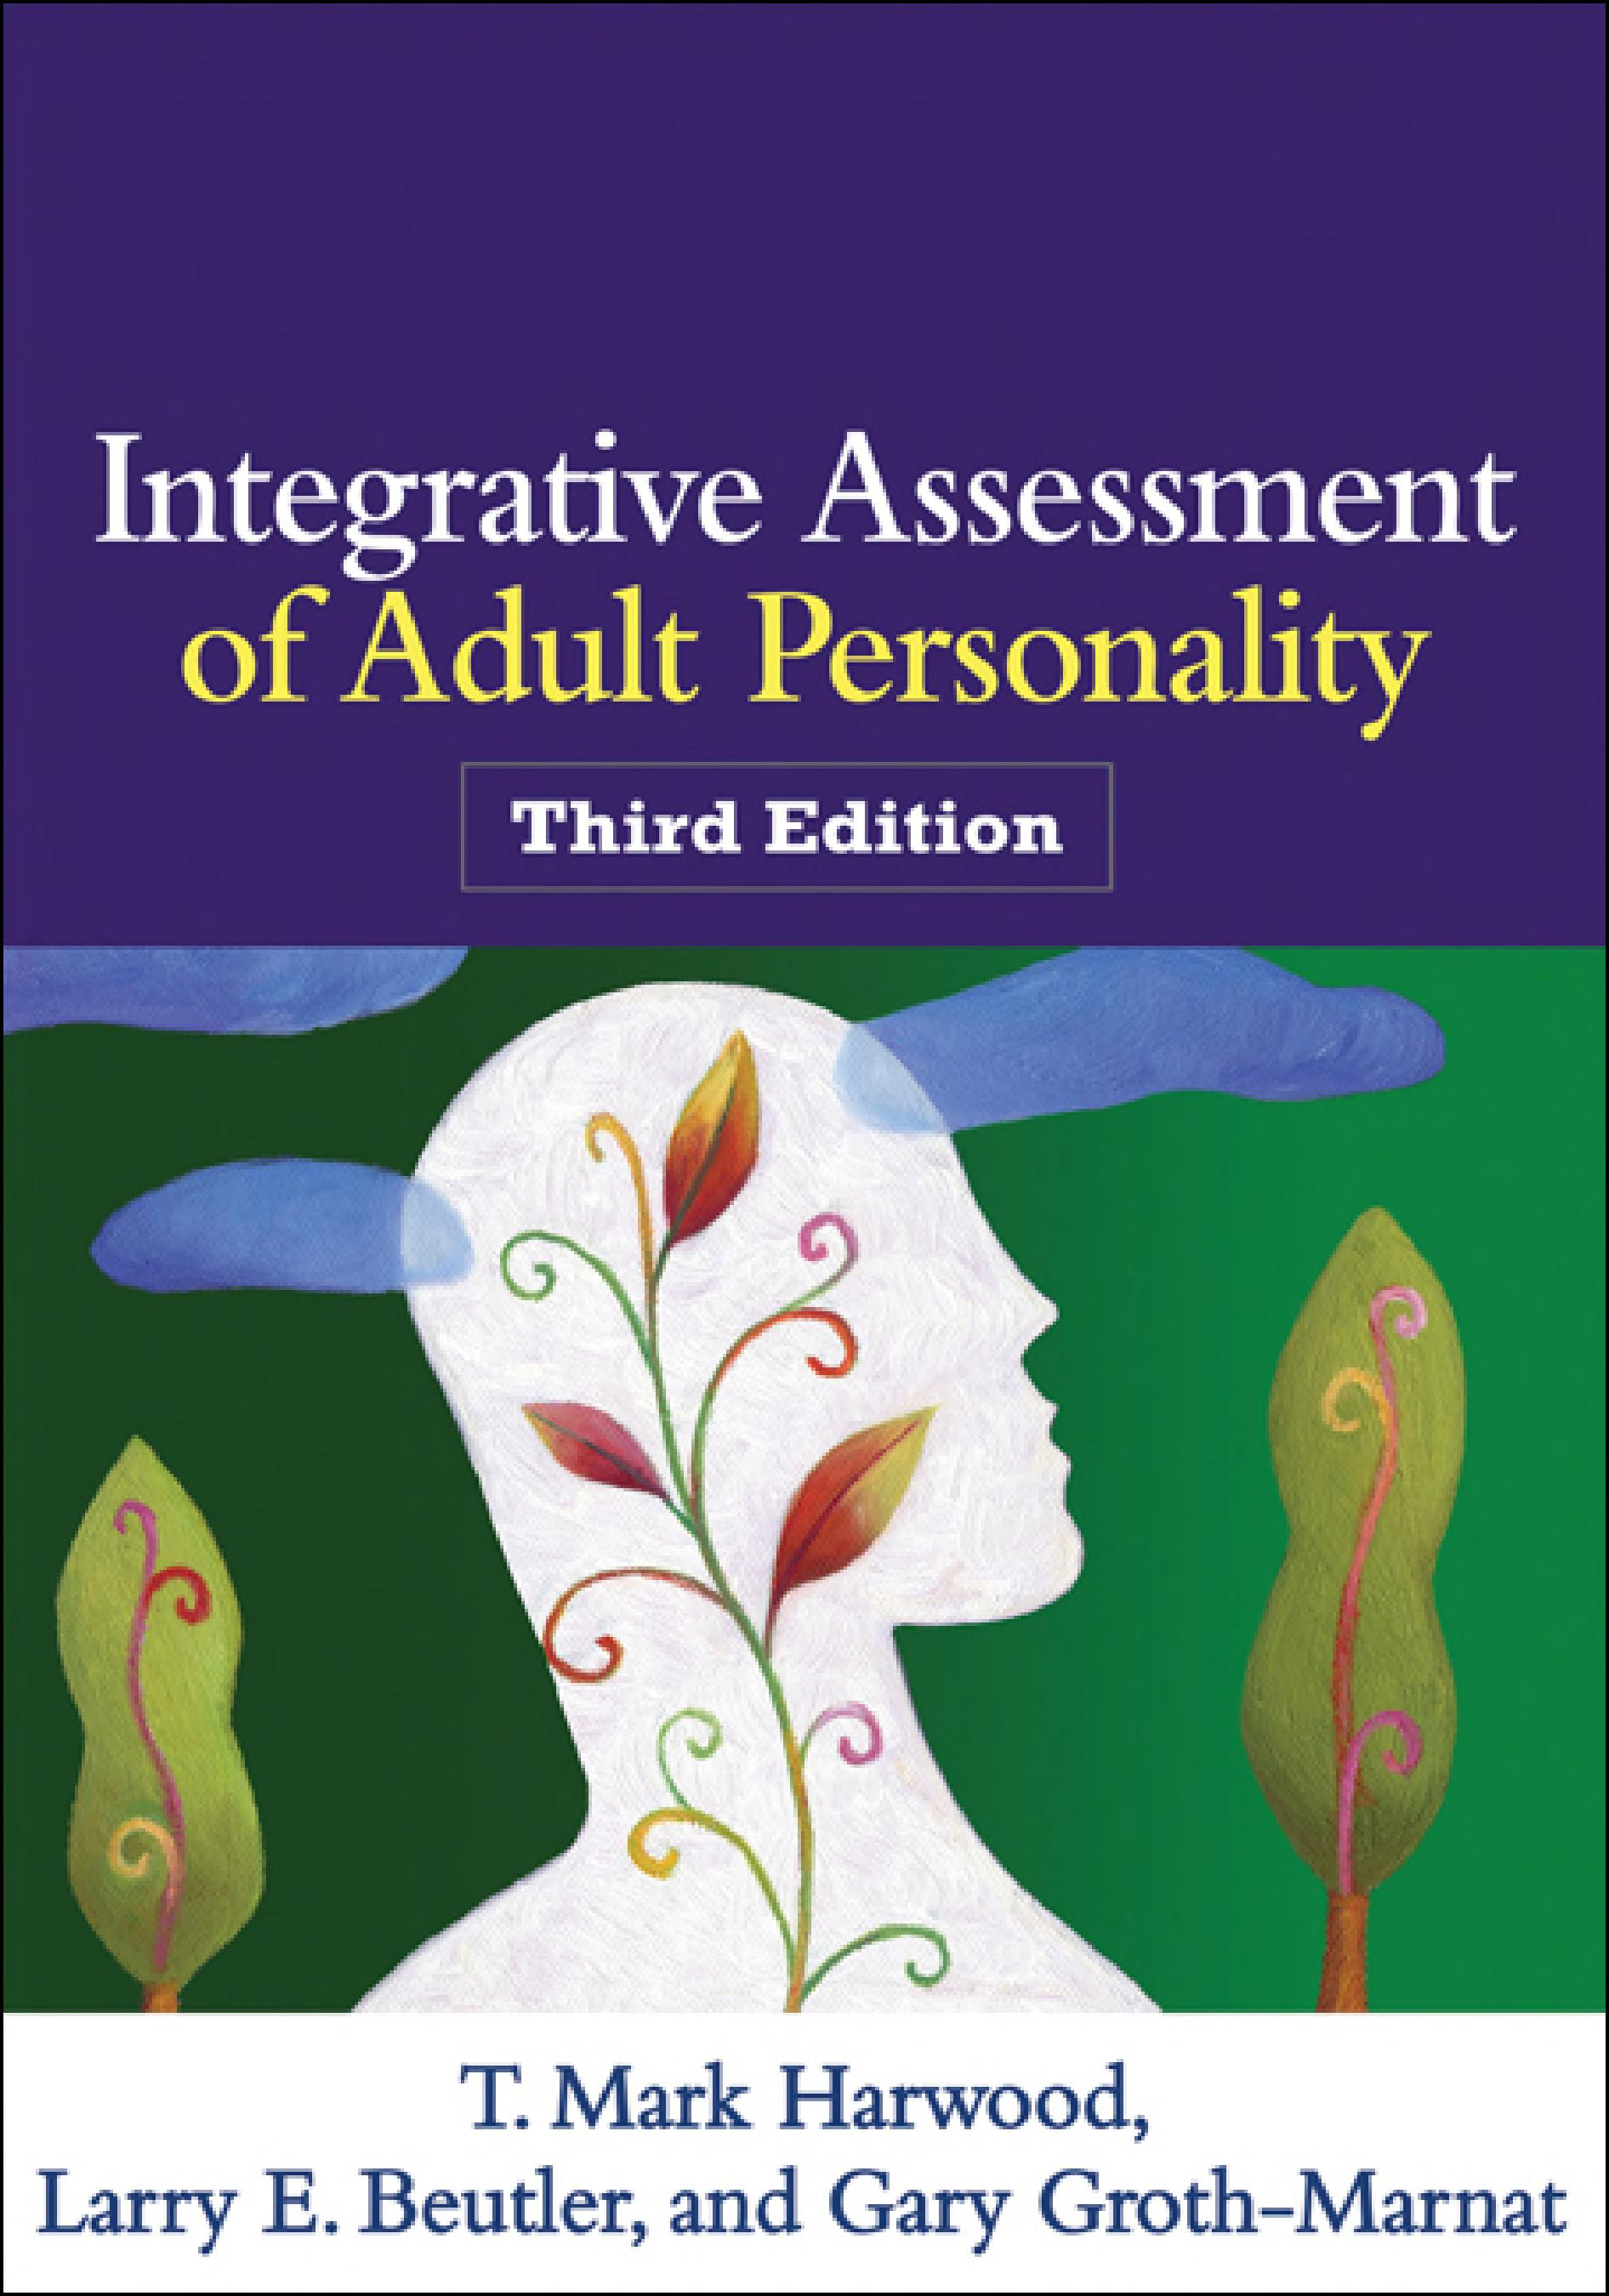 Integrative Assessment of Adult Personality, Third Edition